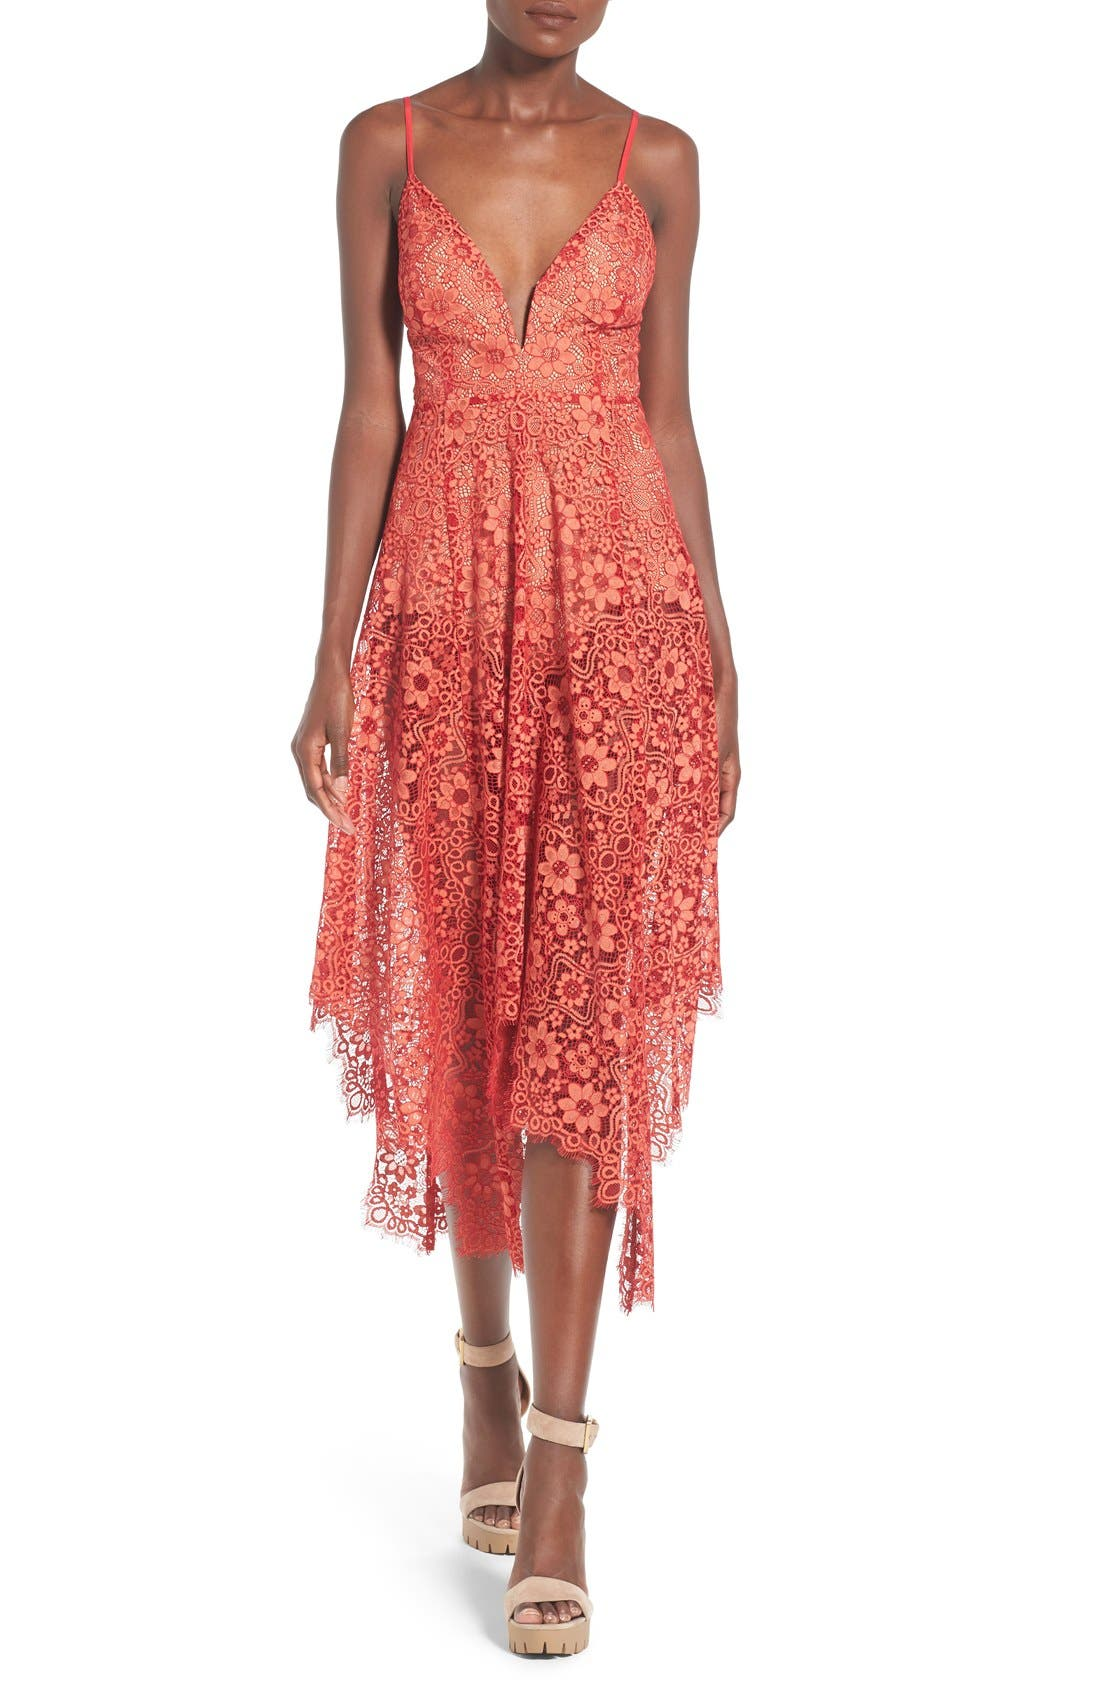 Main Image - For Love & Lemons 'Rosemary' Handkerchief Hem Lace Midi Dress